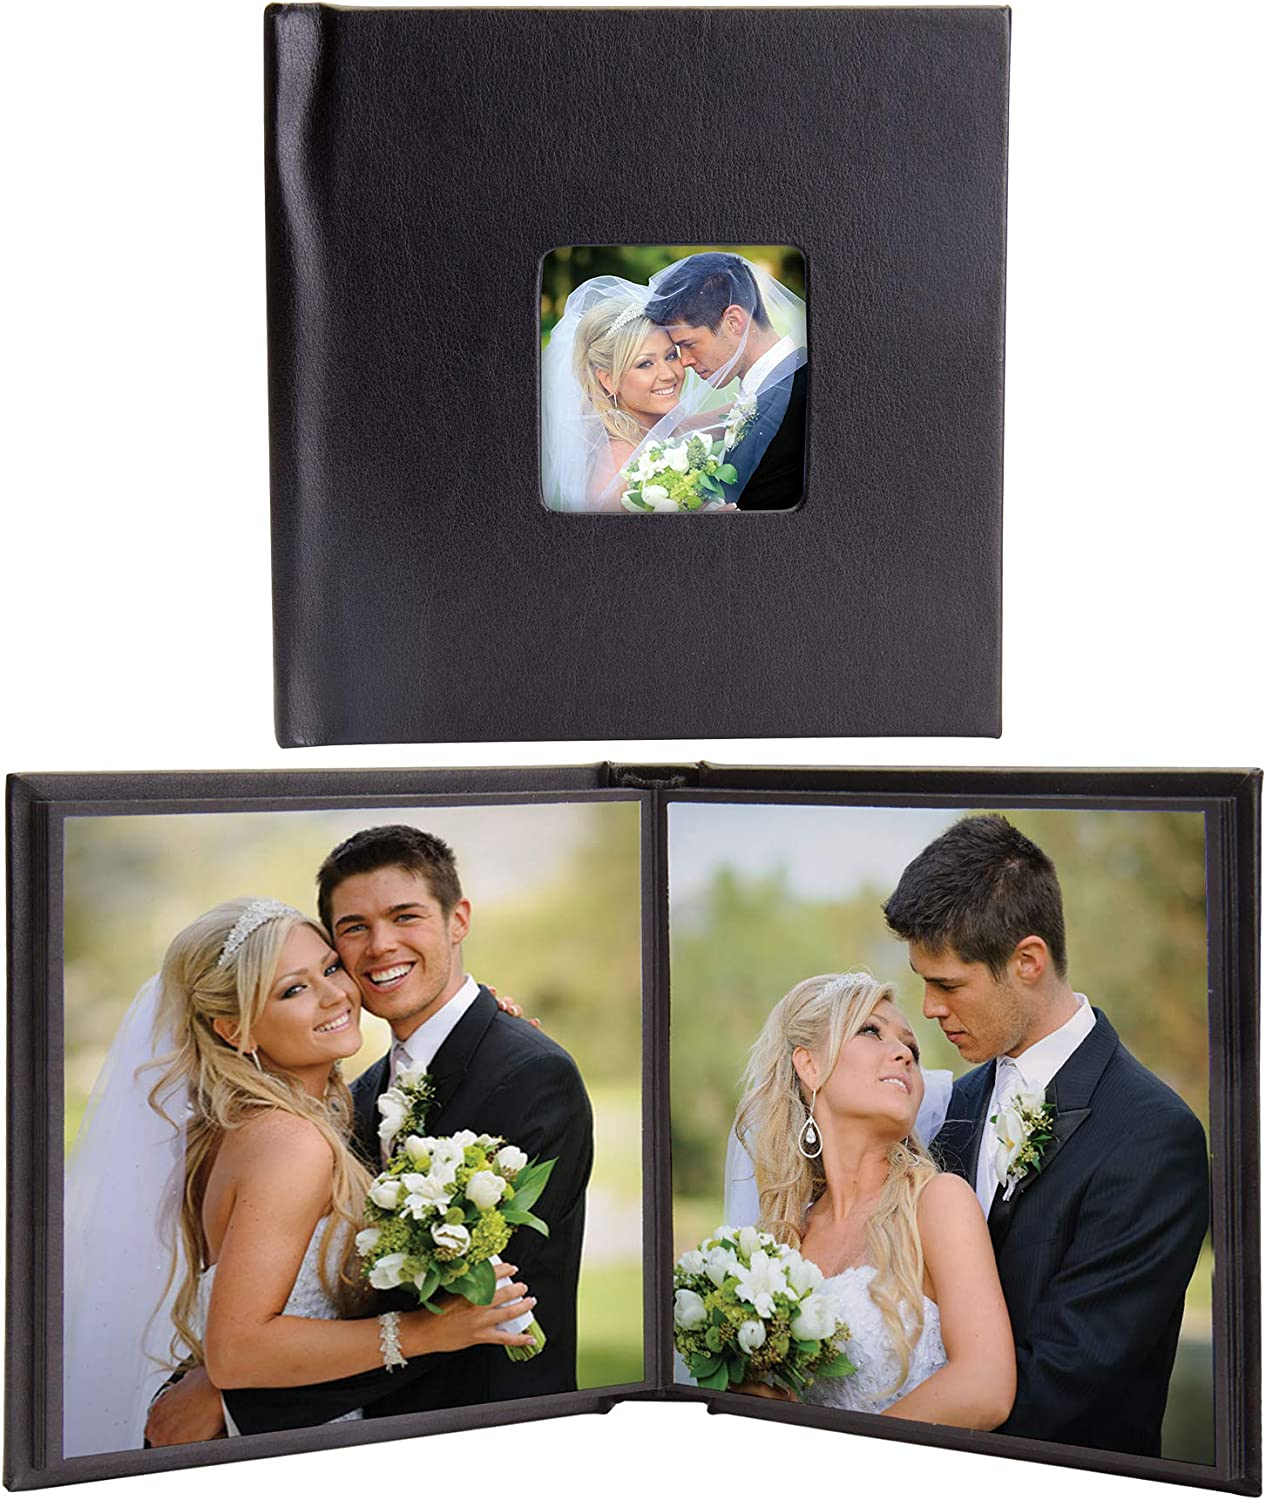 San Antonio Mall 5x5 Square Self-Stick Photo Albums with of - Case Award-winning store 12 Cover Cameo